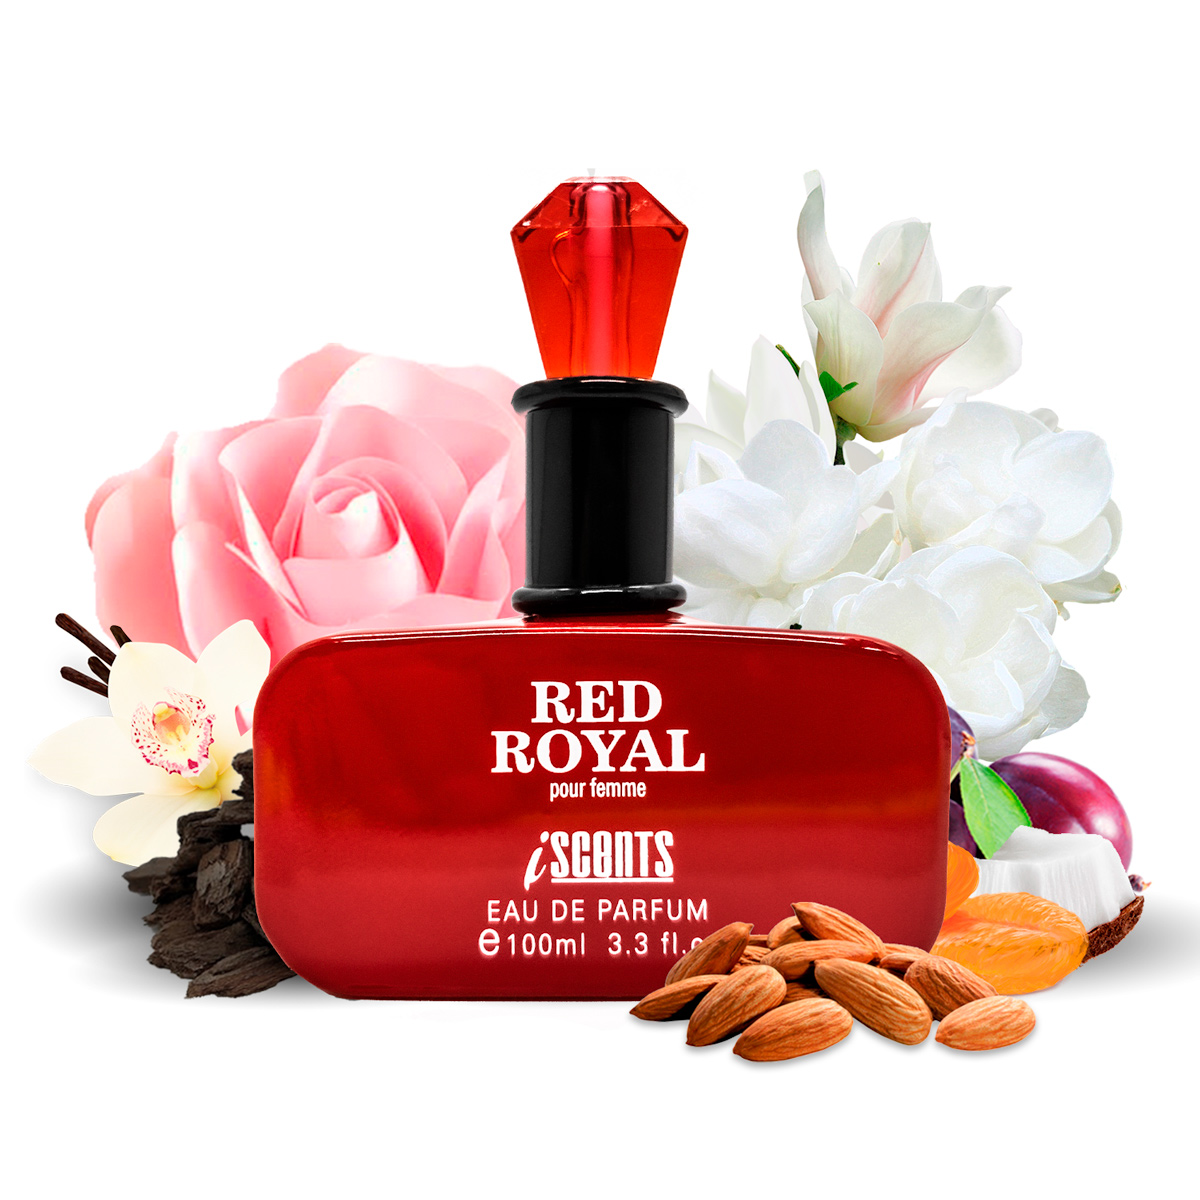 Kit 2 Perfumes Importados Red Royal e Excess I Scents